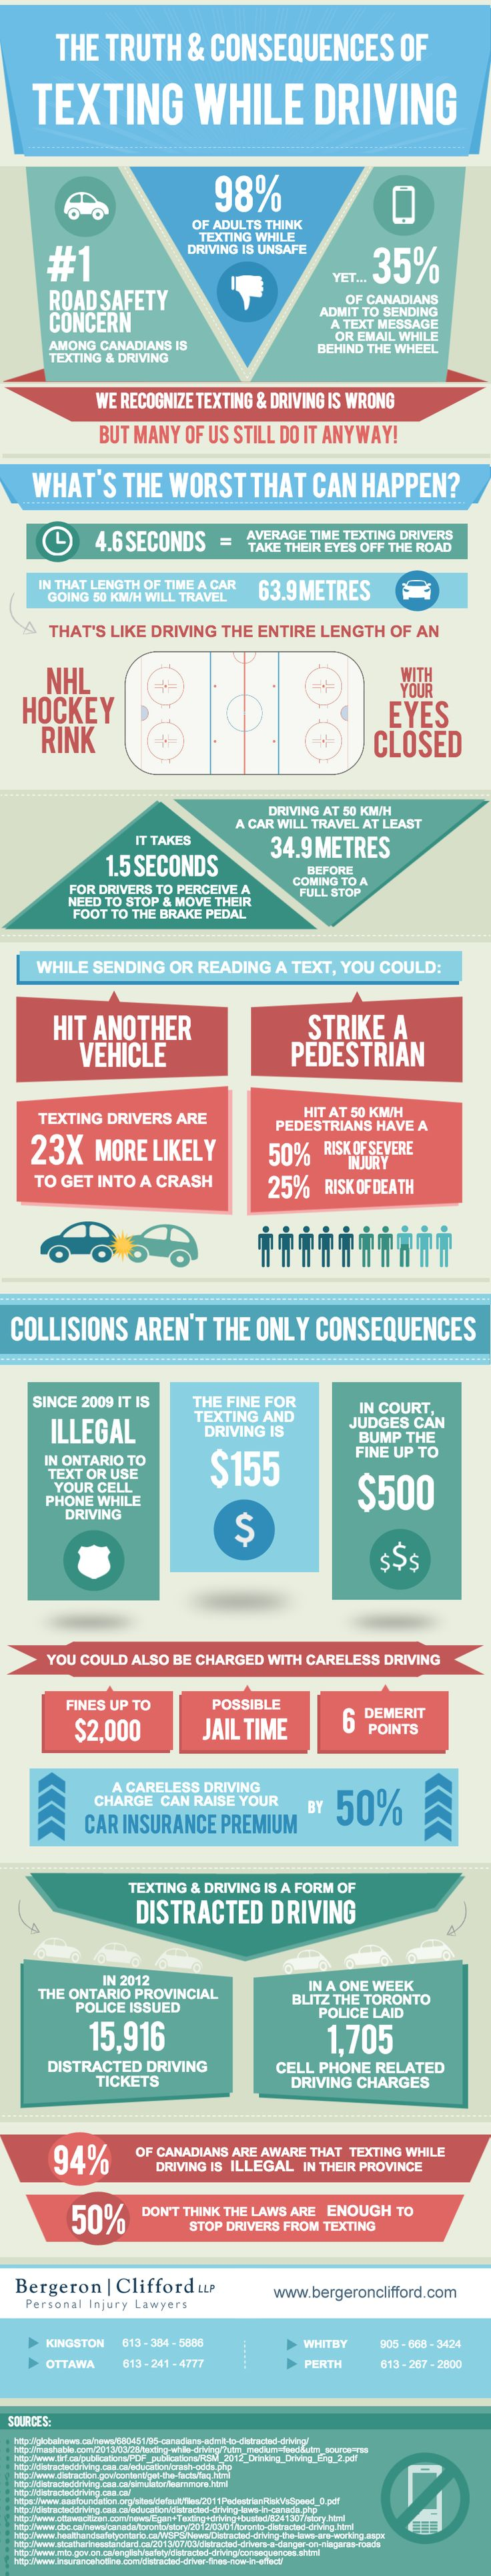 The Truth and Consequences of Texting While Driving